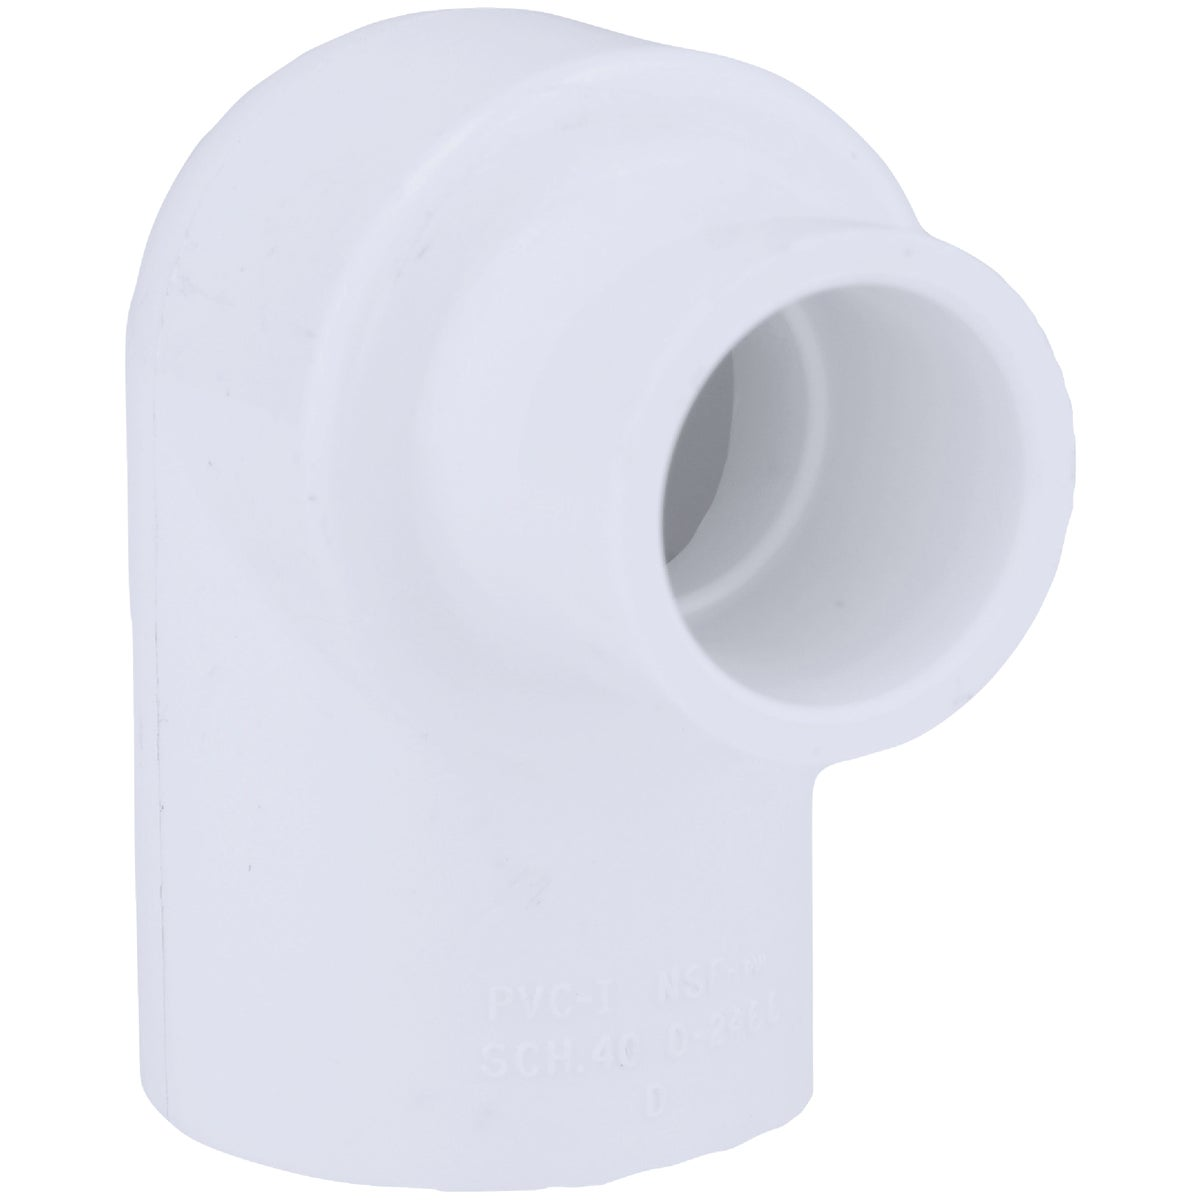 1X1/2 PVC SXS 90D ELBOW - 30716 by Genova Inc